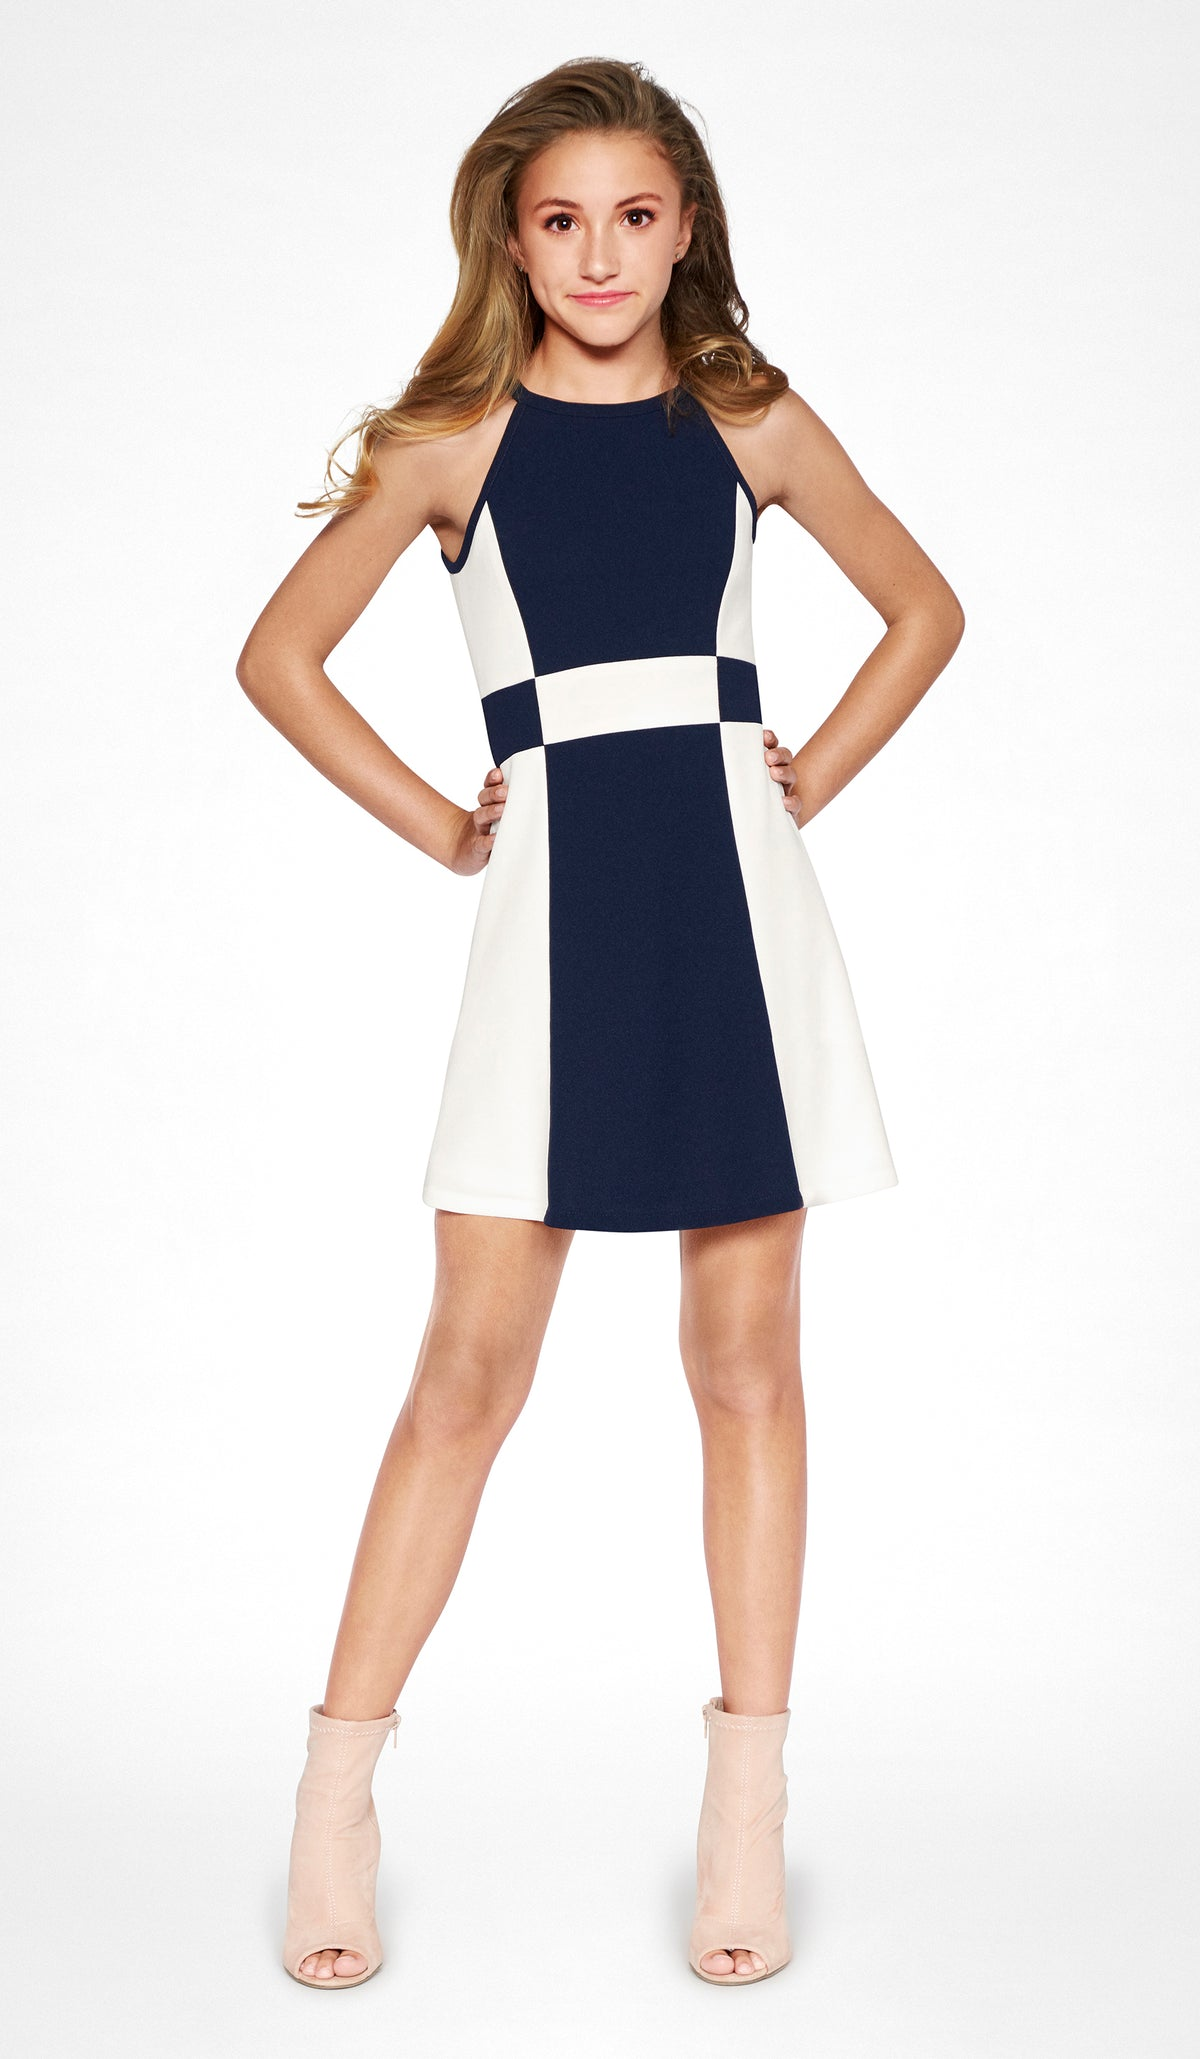 Junior modern Navy and Ivory color block stretch crepe georgette dress with button back closure Peggy Dress Juniors Sally Miller